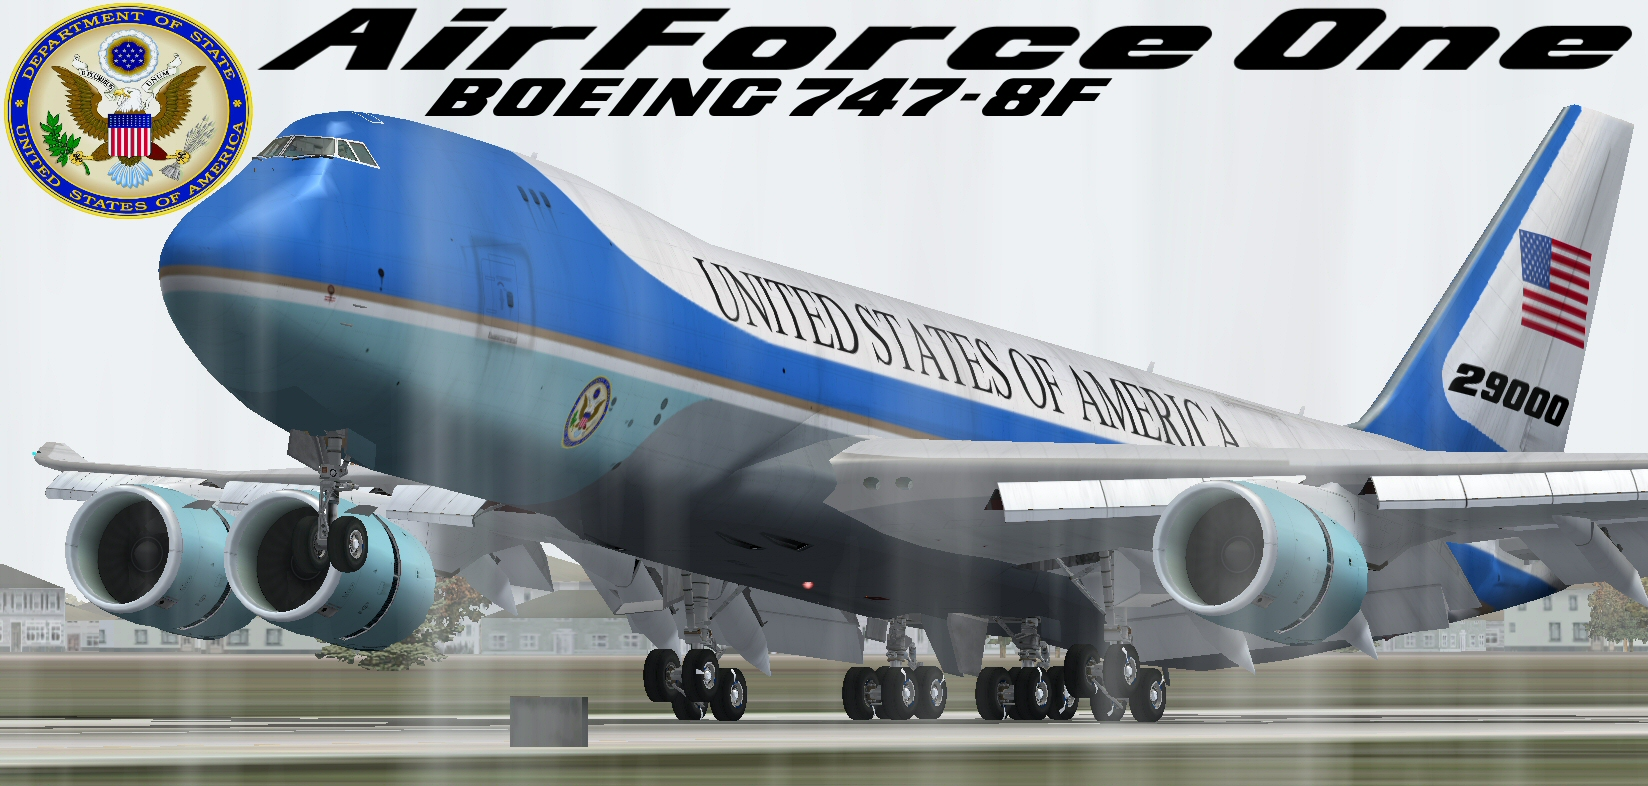 FS2004 FSX Air Force One Boeing 747-8F